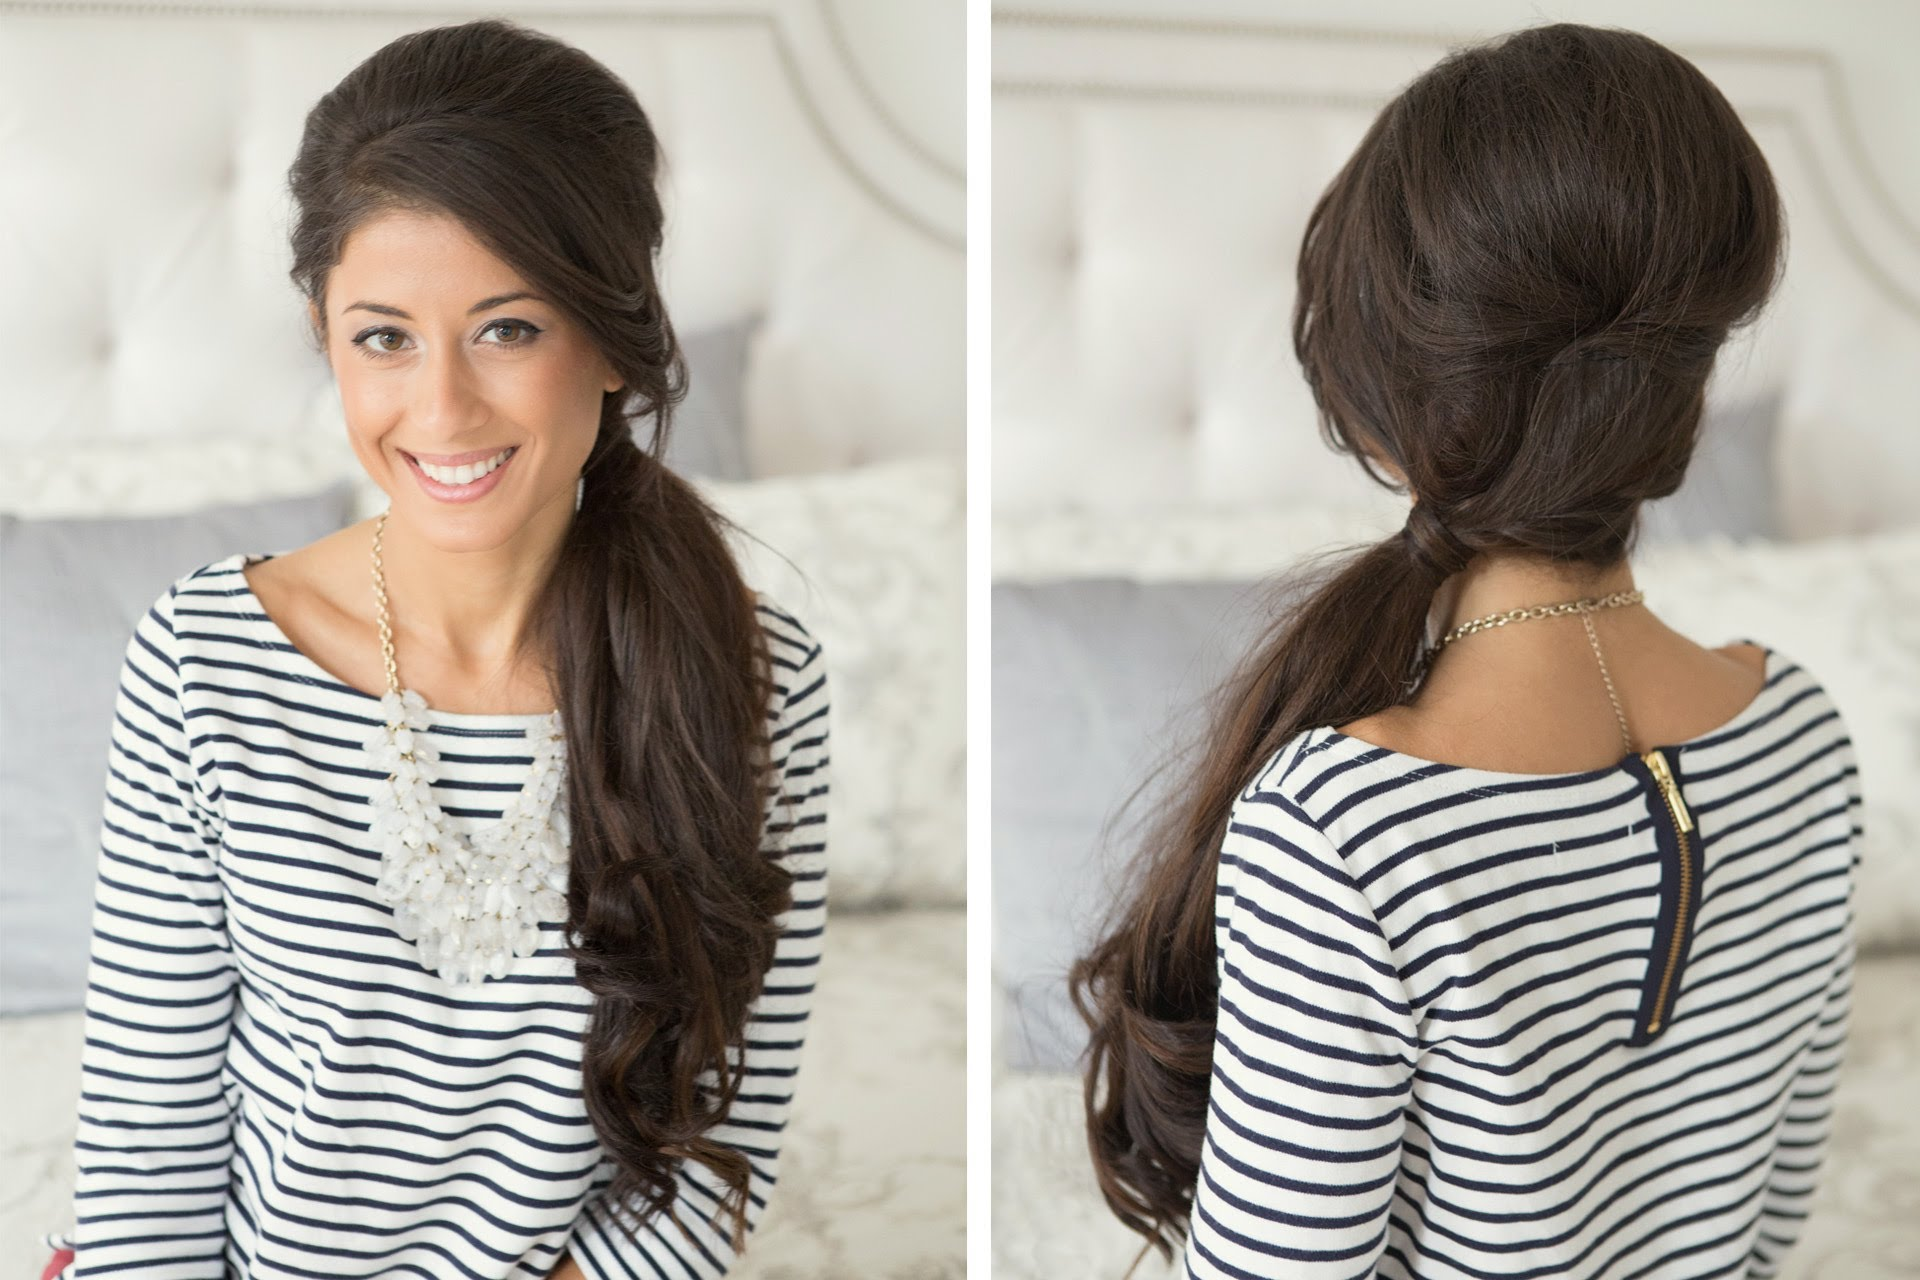 The model with low wavy side pony.